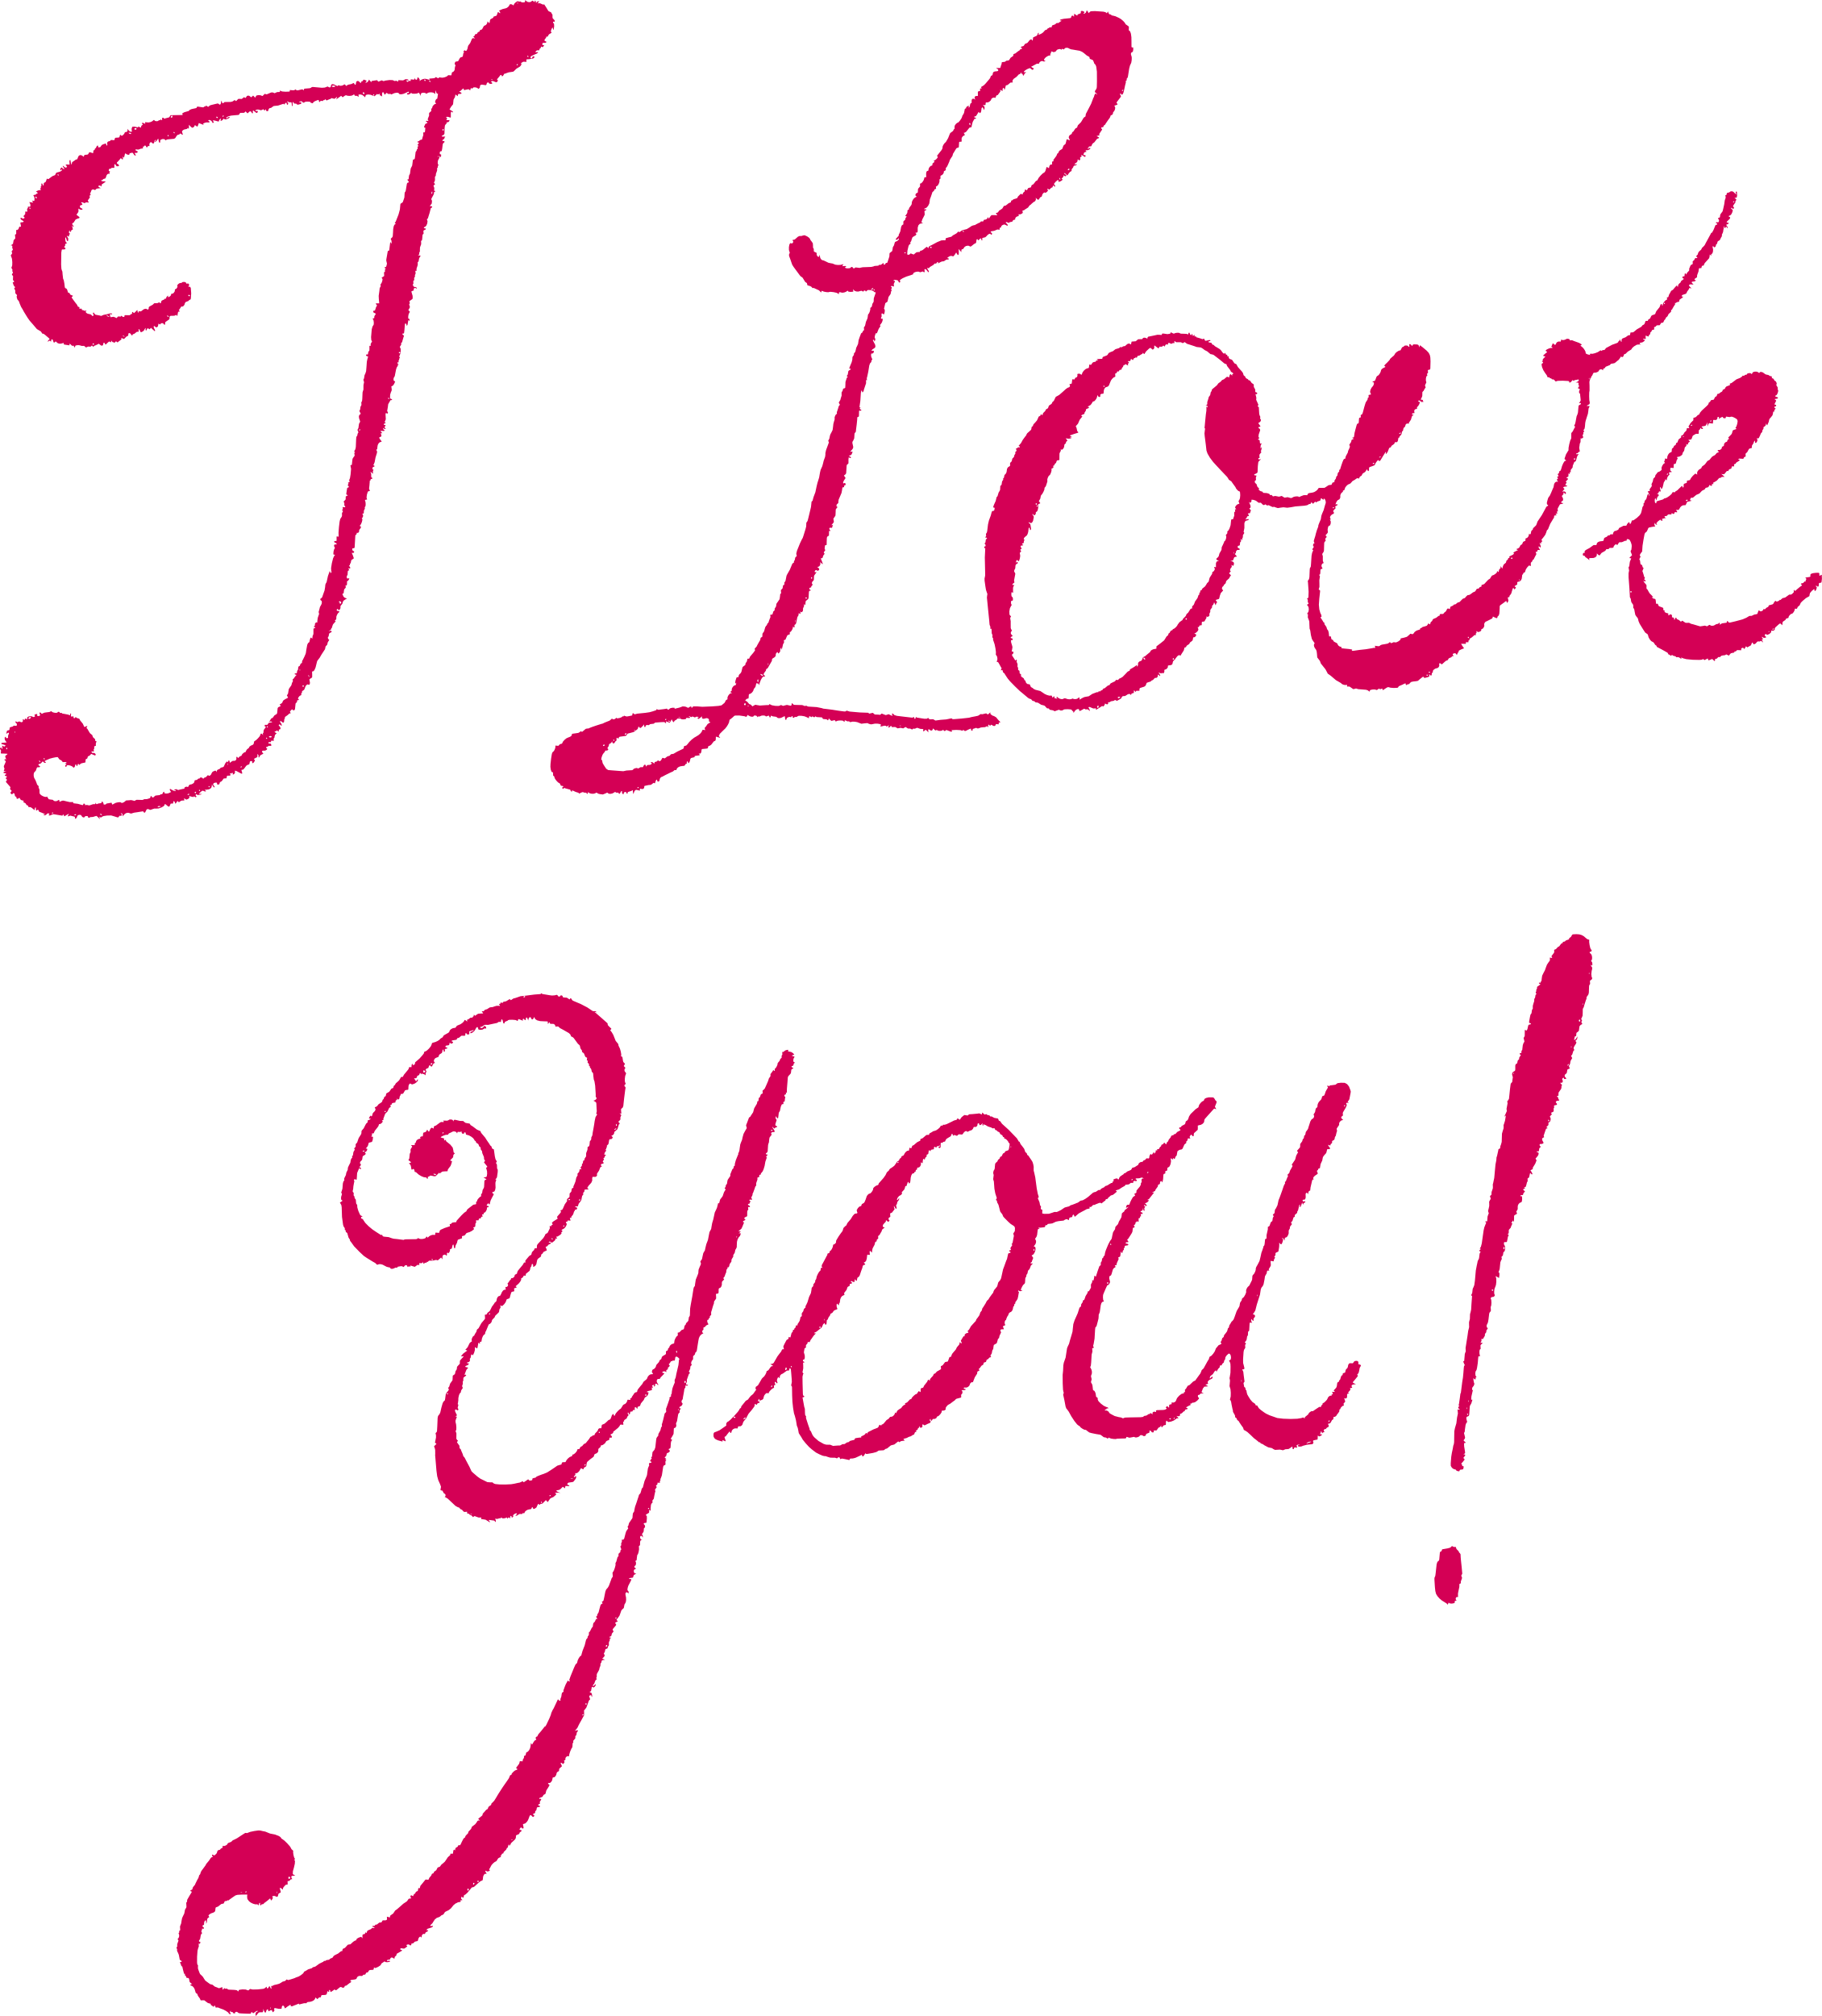 8 i love you texts png transparent onlygfx free download i love you 7g altavistaventures Choice Image